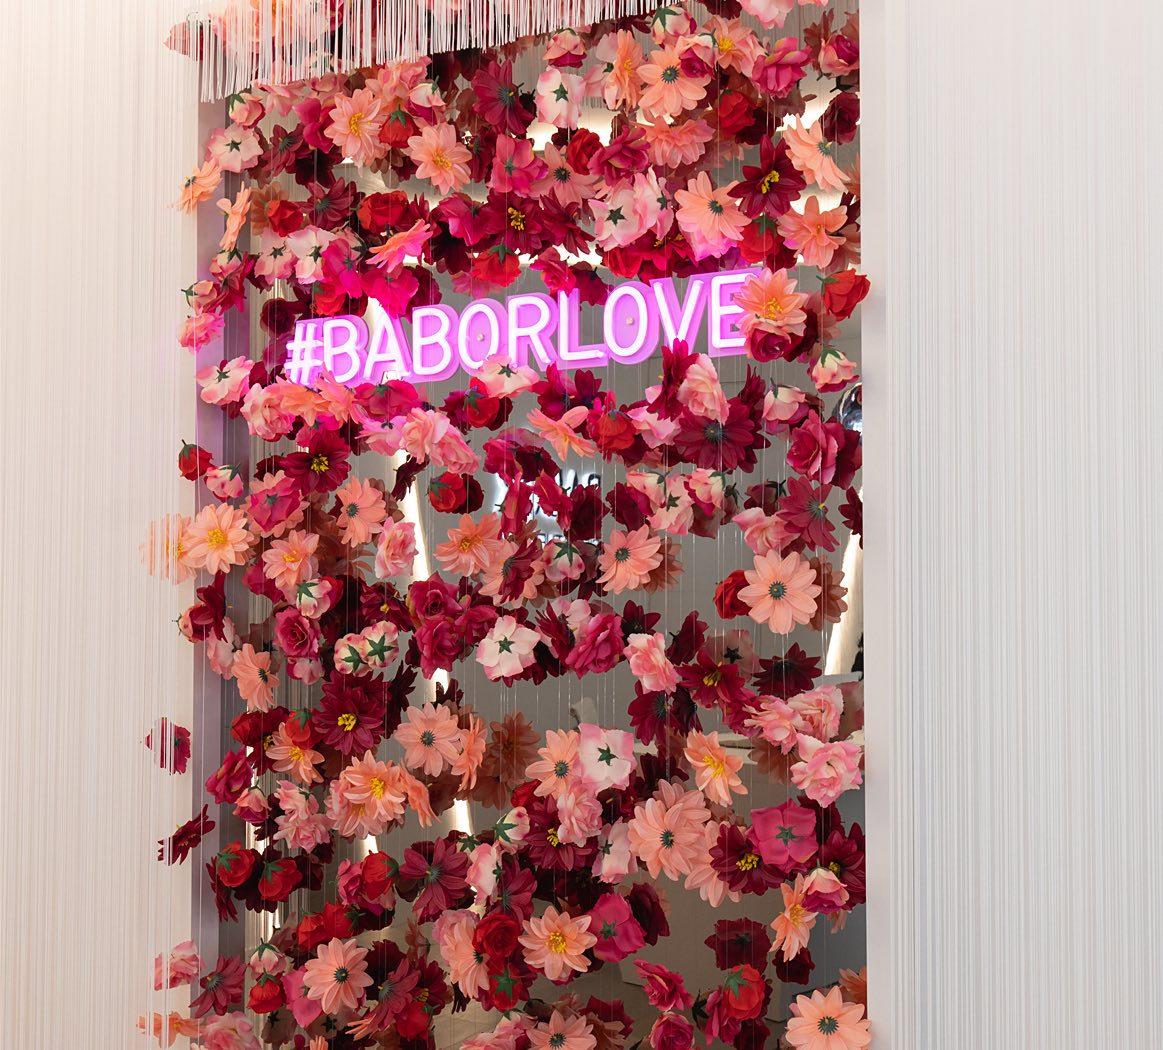 wall of flowers with hashtag babor love in lights